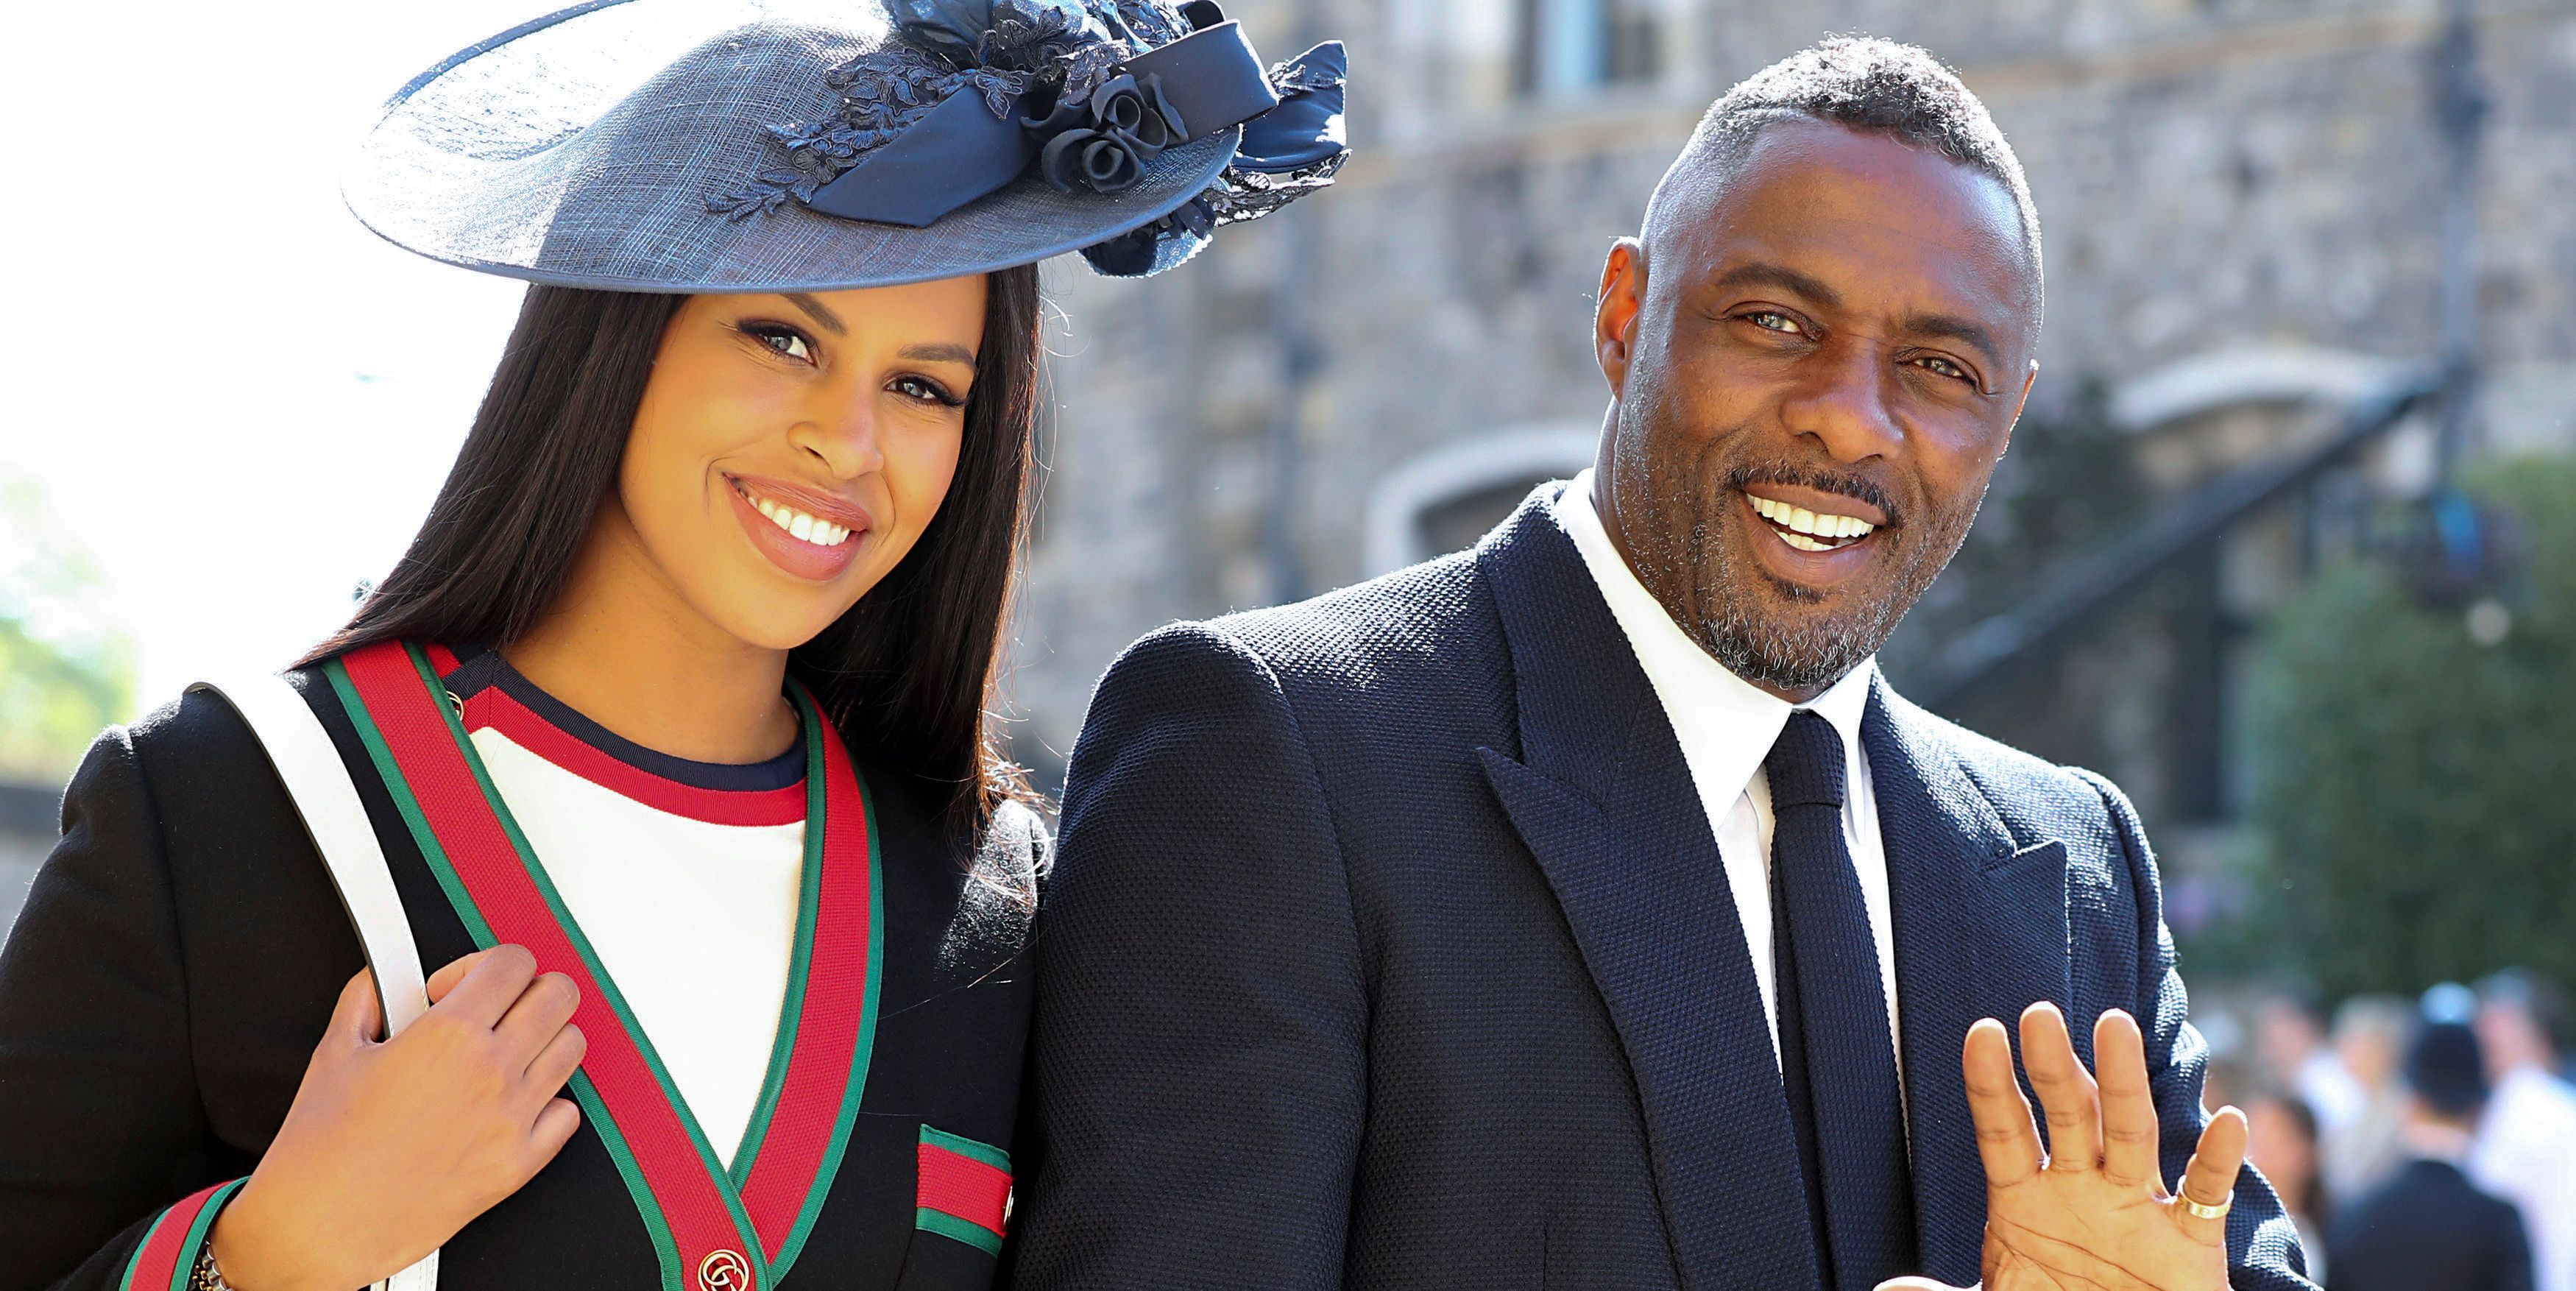 The Best Dressed Guests at Harry and Meghan's Royal Wedding